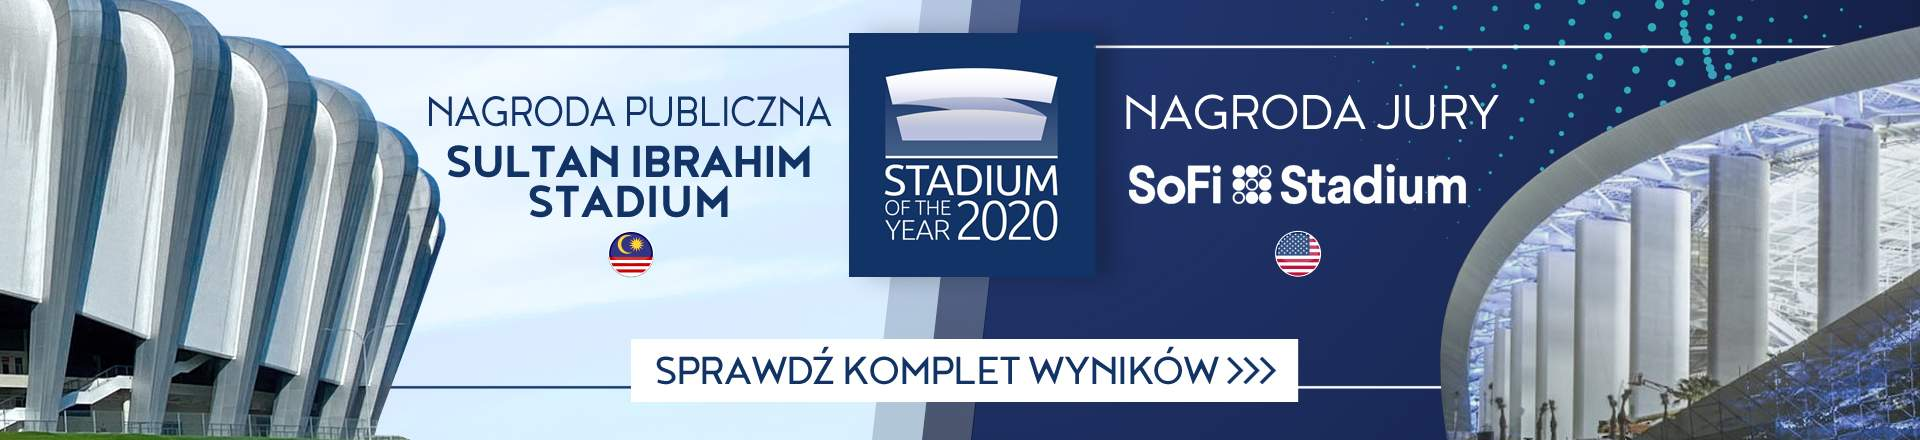 Stadium of the Year 2020 - zobacz wyniki!